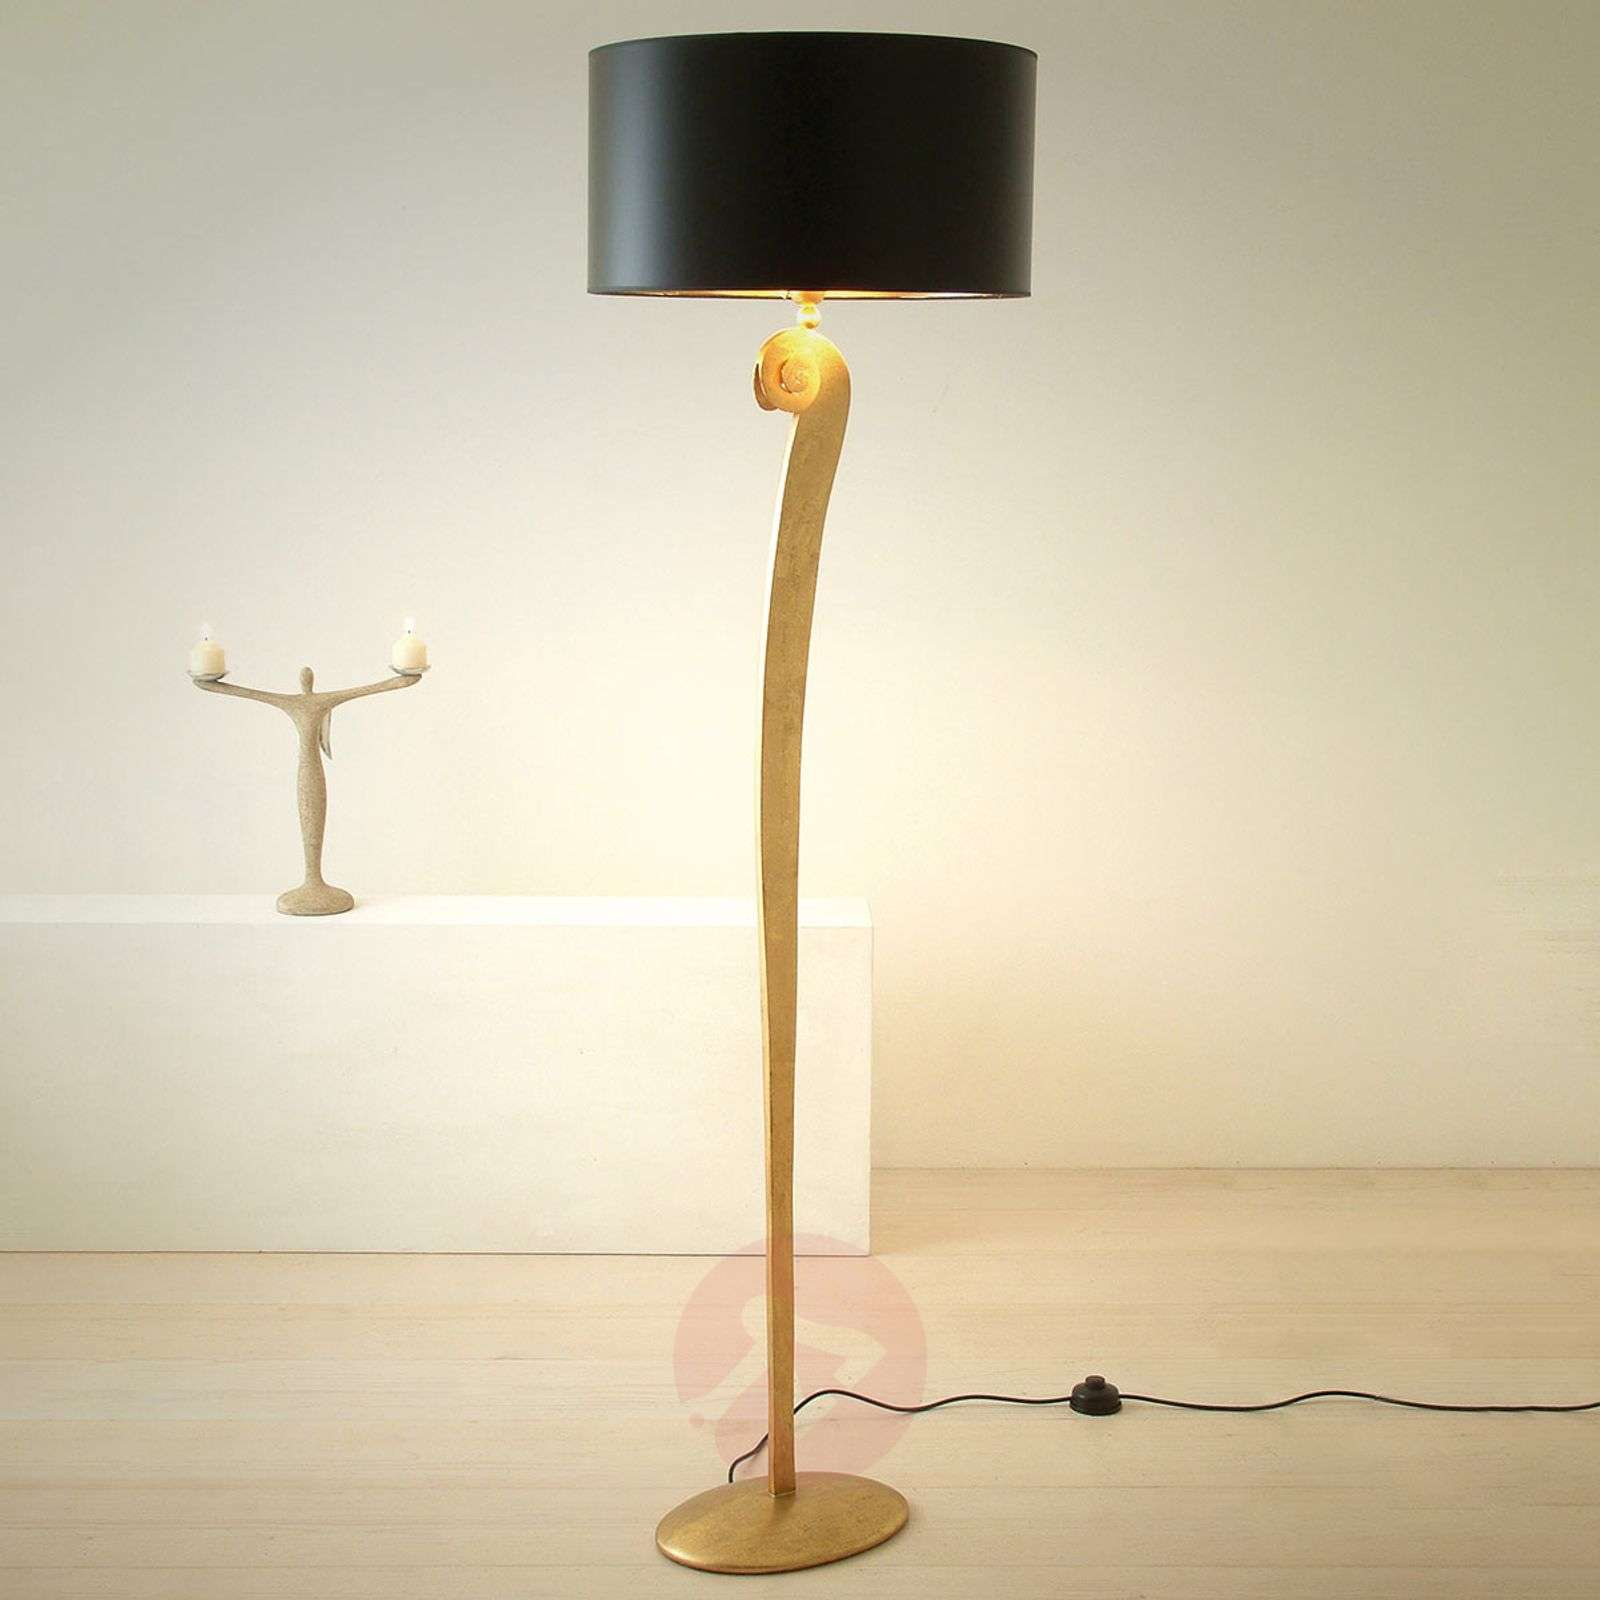 Elegant floor lamp lorgolioso in gold black 4512120 01